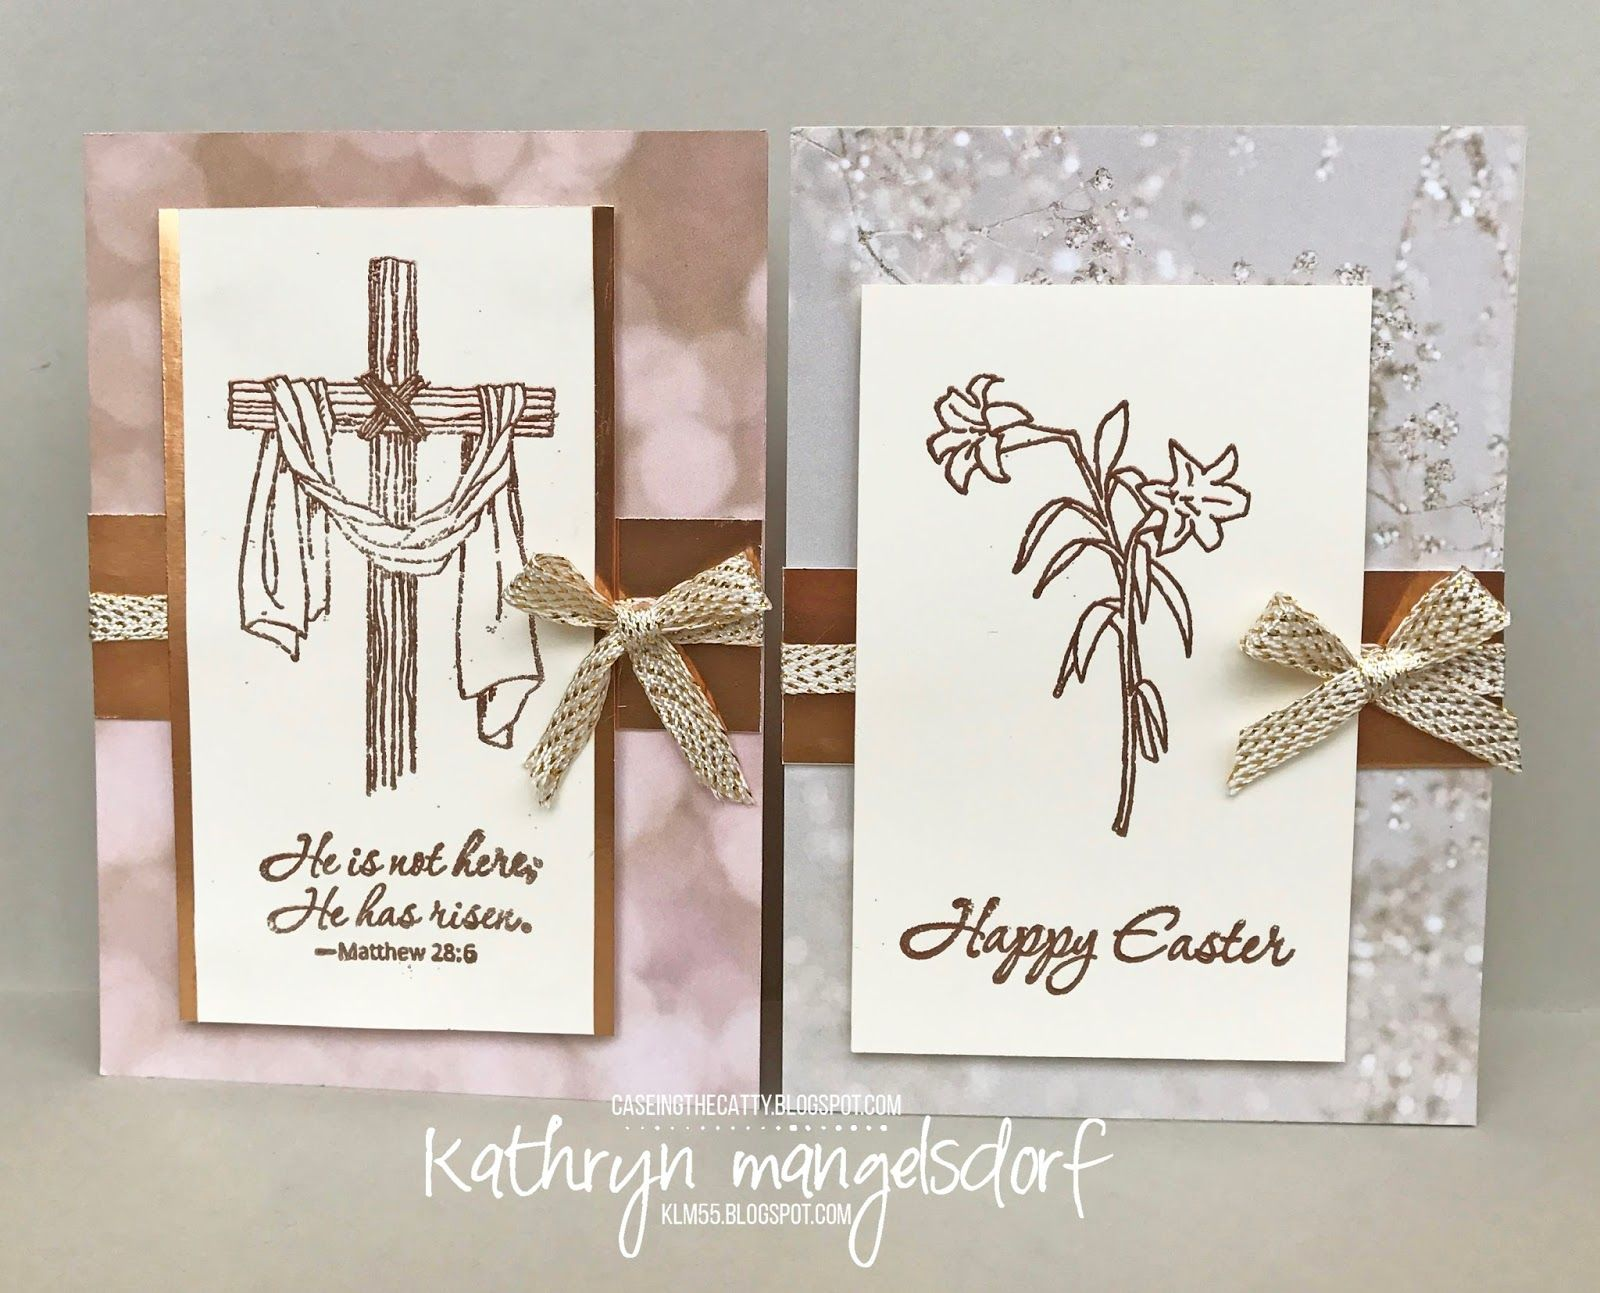 Supreme Baby Easter Easter Card Created By Kathryn Mangelsdorf Easter Easter Card Created By Kathryn Hallmark Easter Card Messages Easter Card Messages